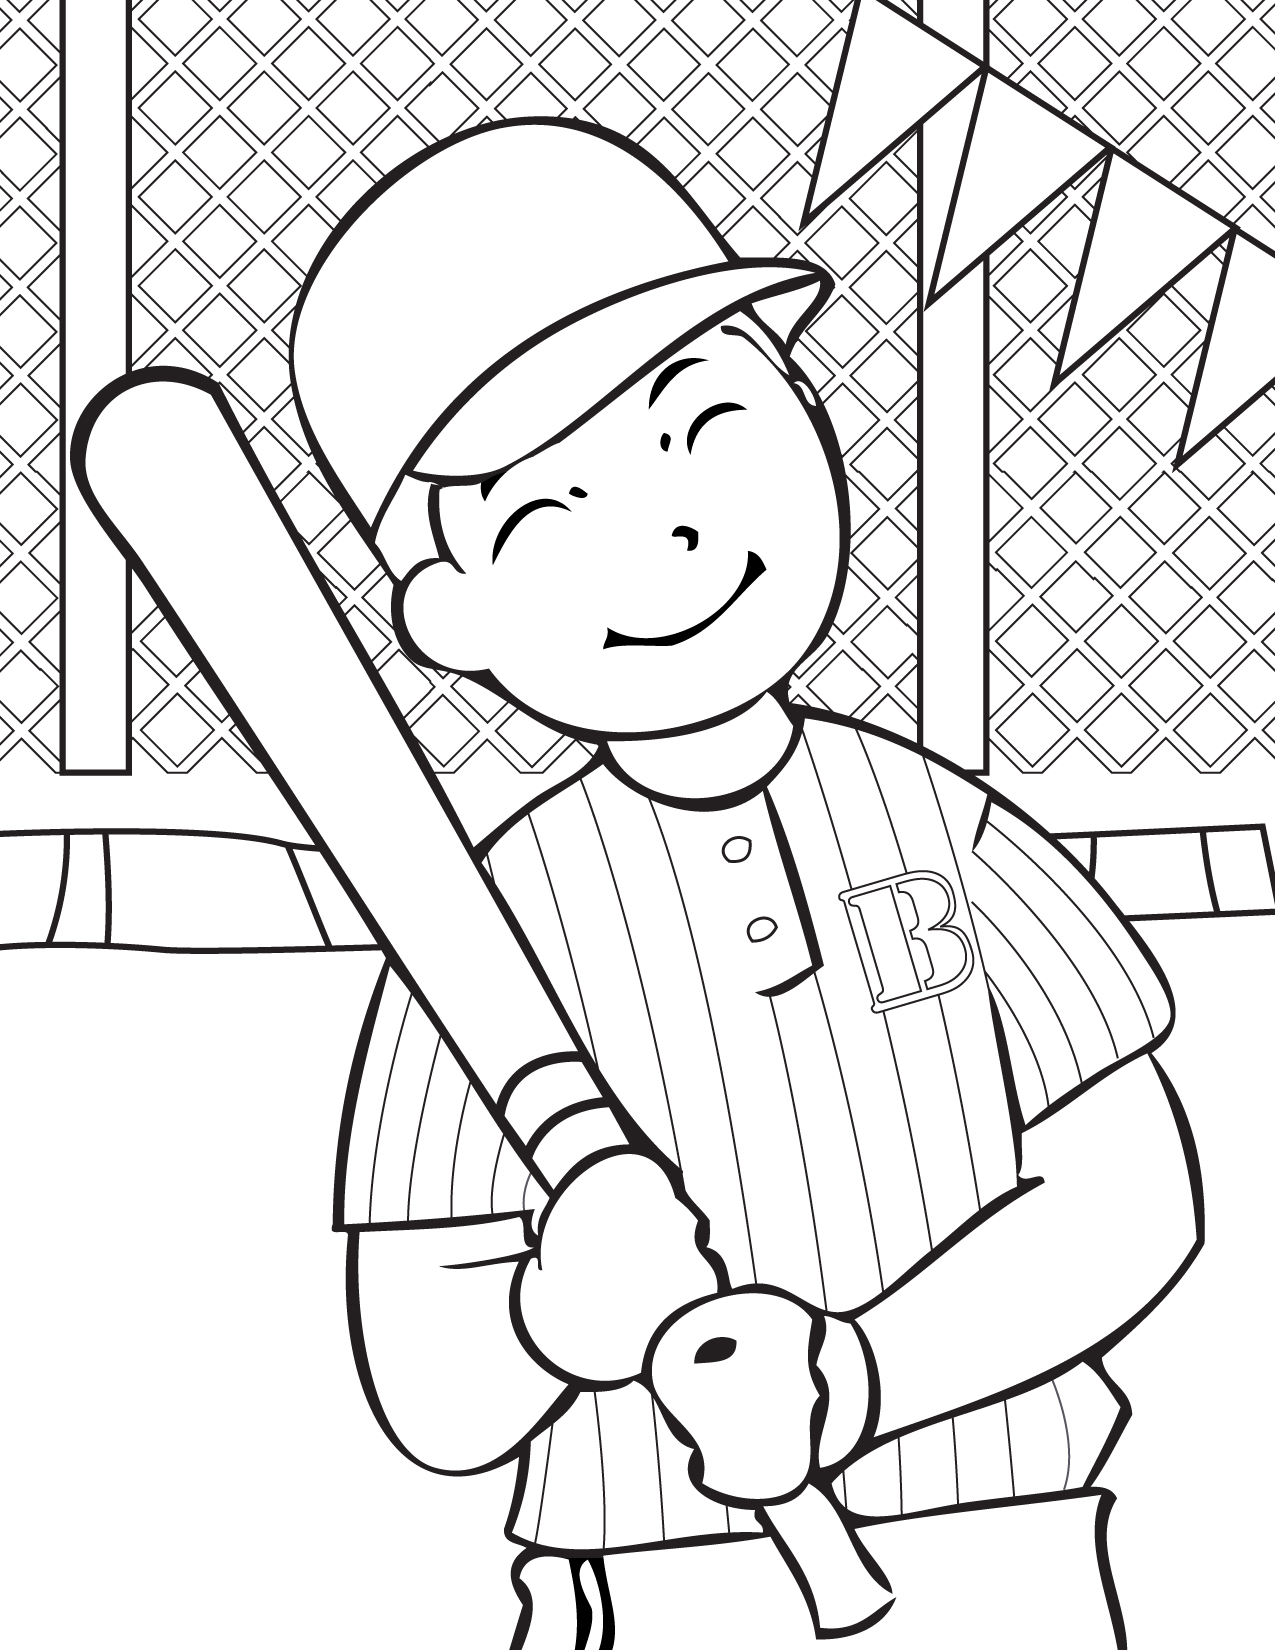 coloring book pages free free printable baseball coloring pages for kids best